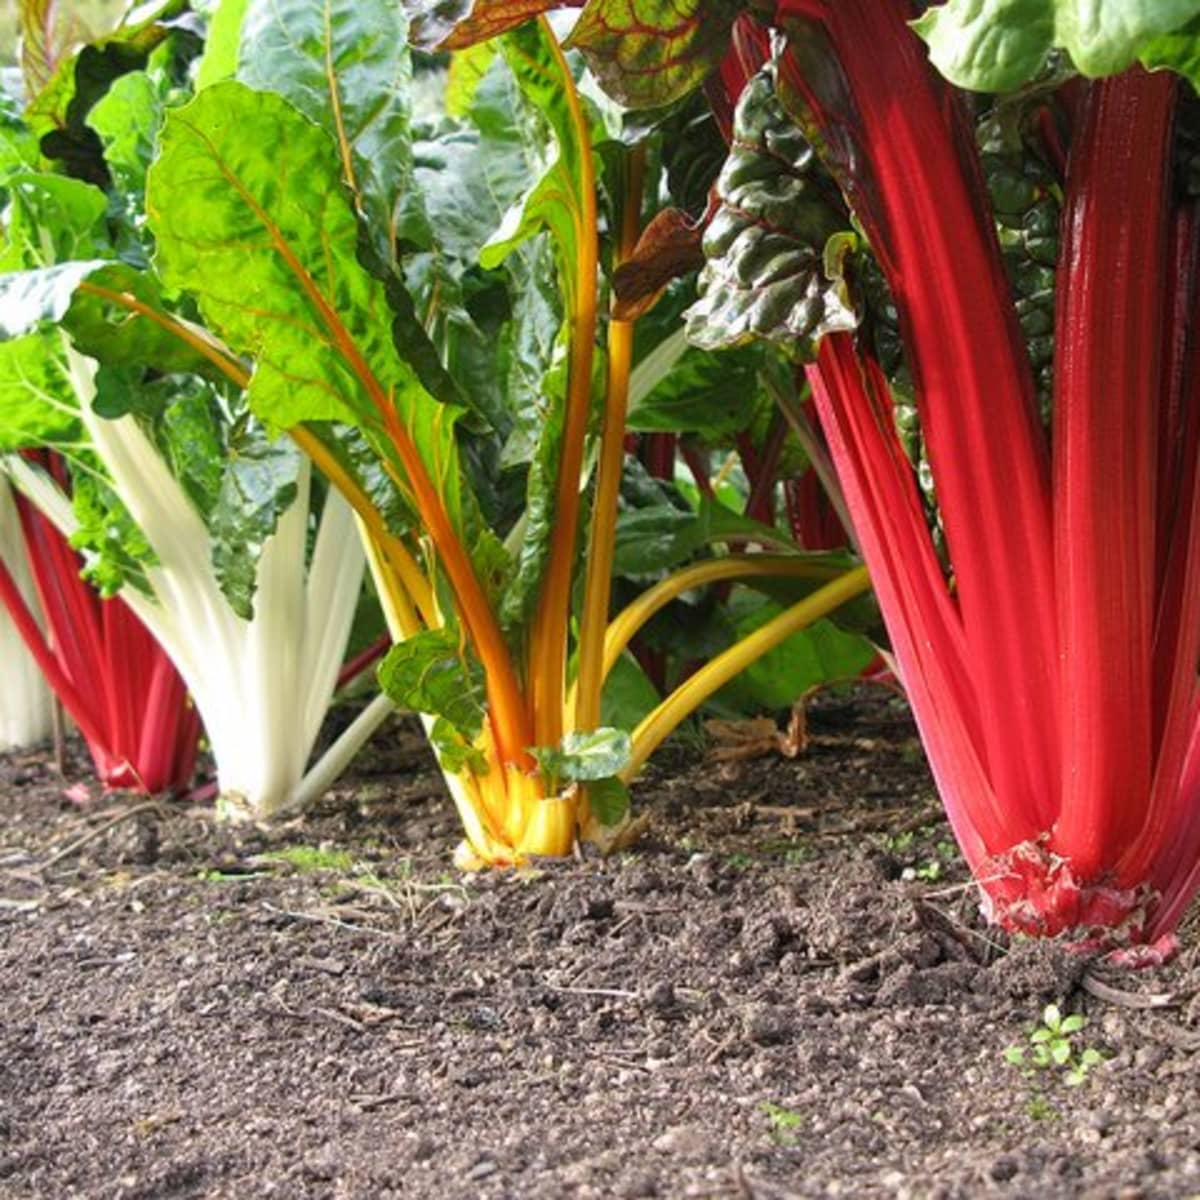 Growing Maintaining And Troubleshooting Swiss Chard Dengarden Home And Garden